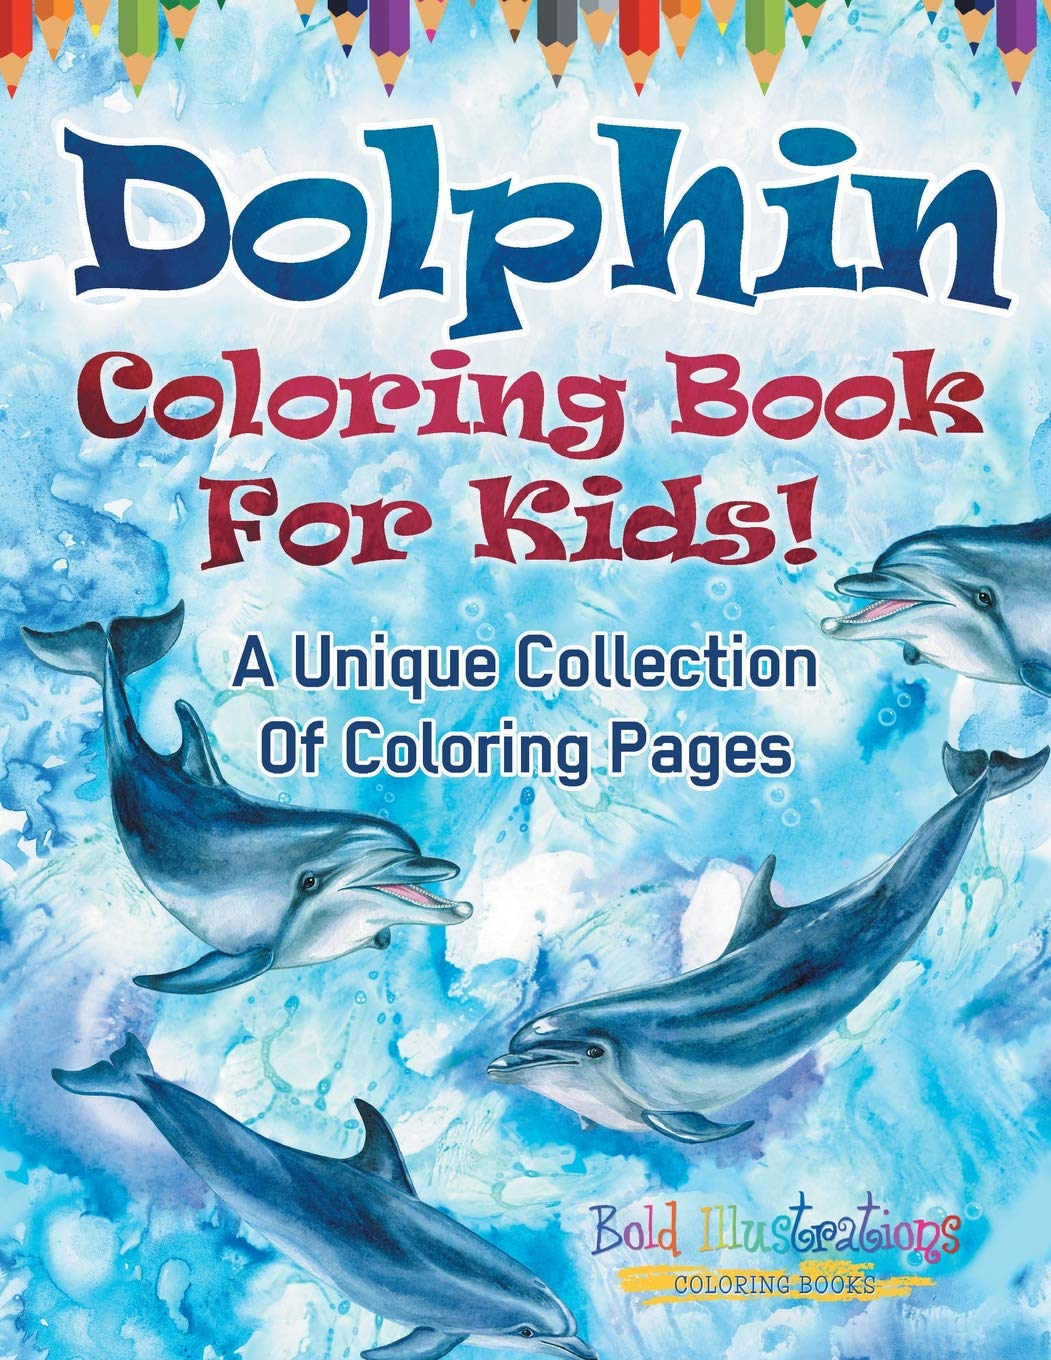 Amazing Series for Kids: Discover Dolphin Picture Book